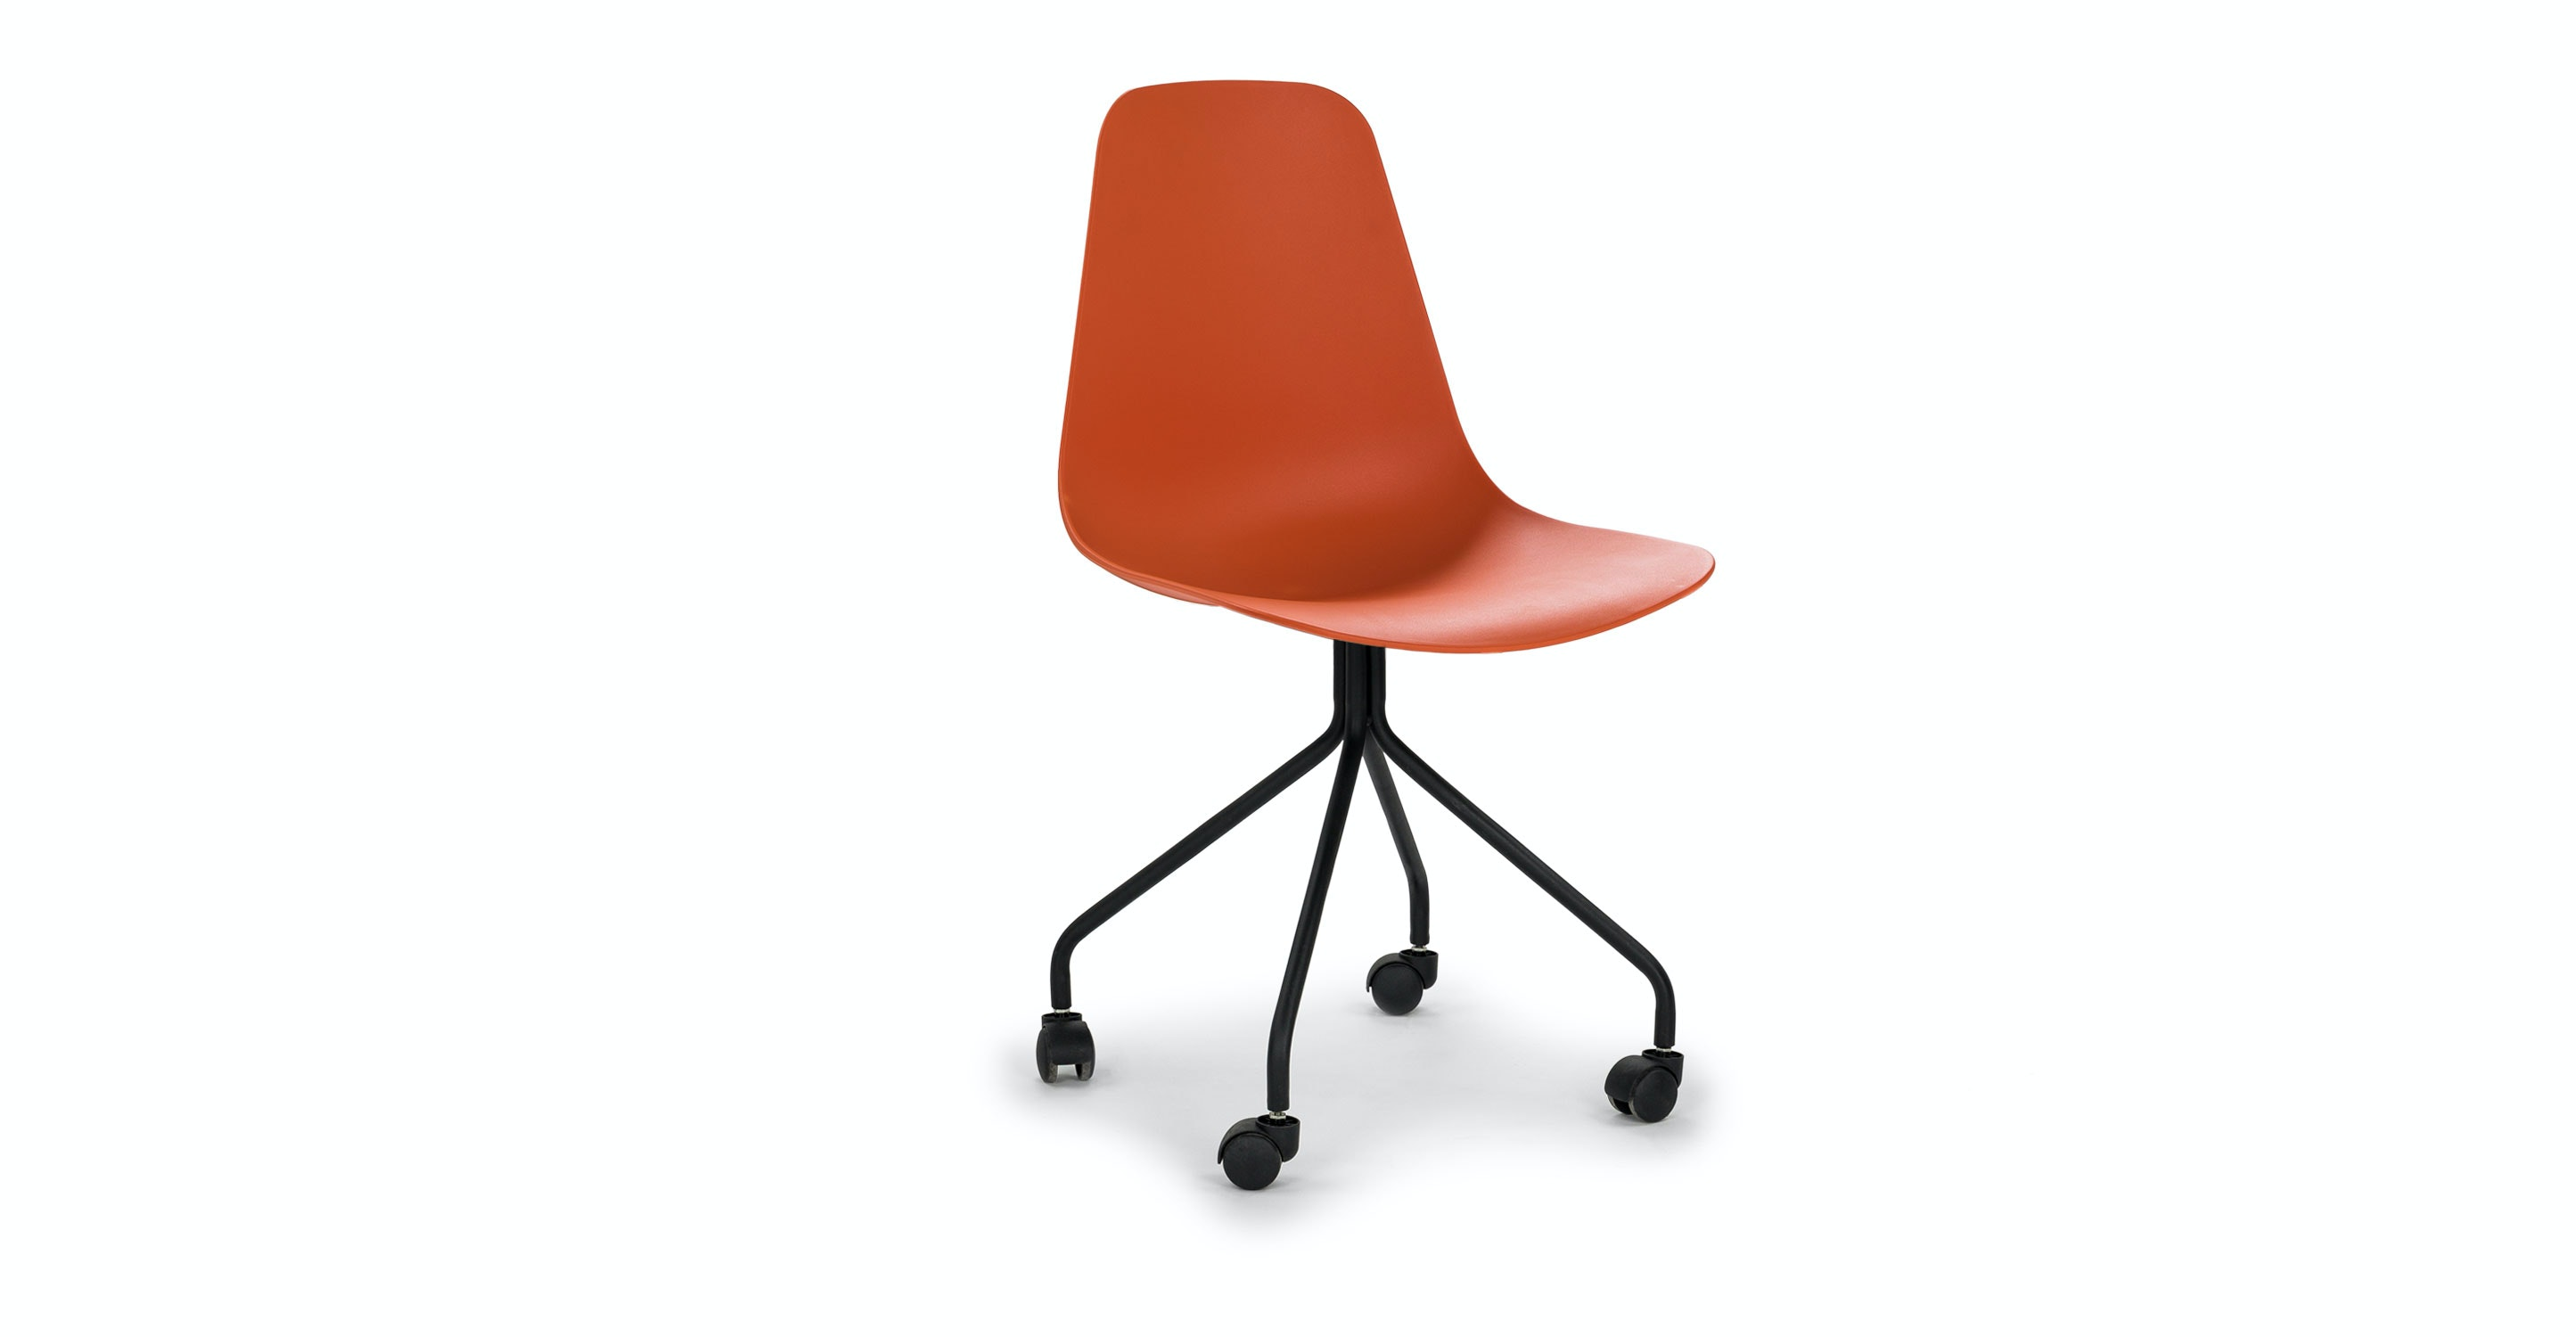 orange office furniture. Svelti Begonia Orange Office Chair - Chairs Article | Modern, Mid-Century And Scandinavian Furniture